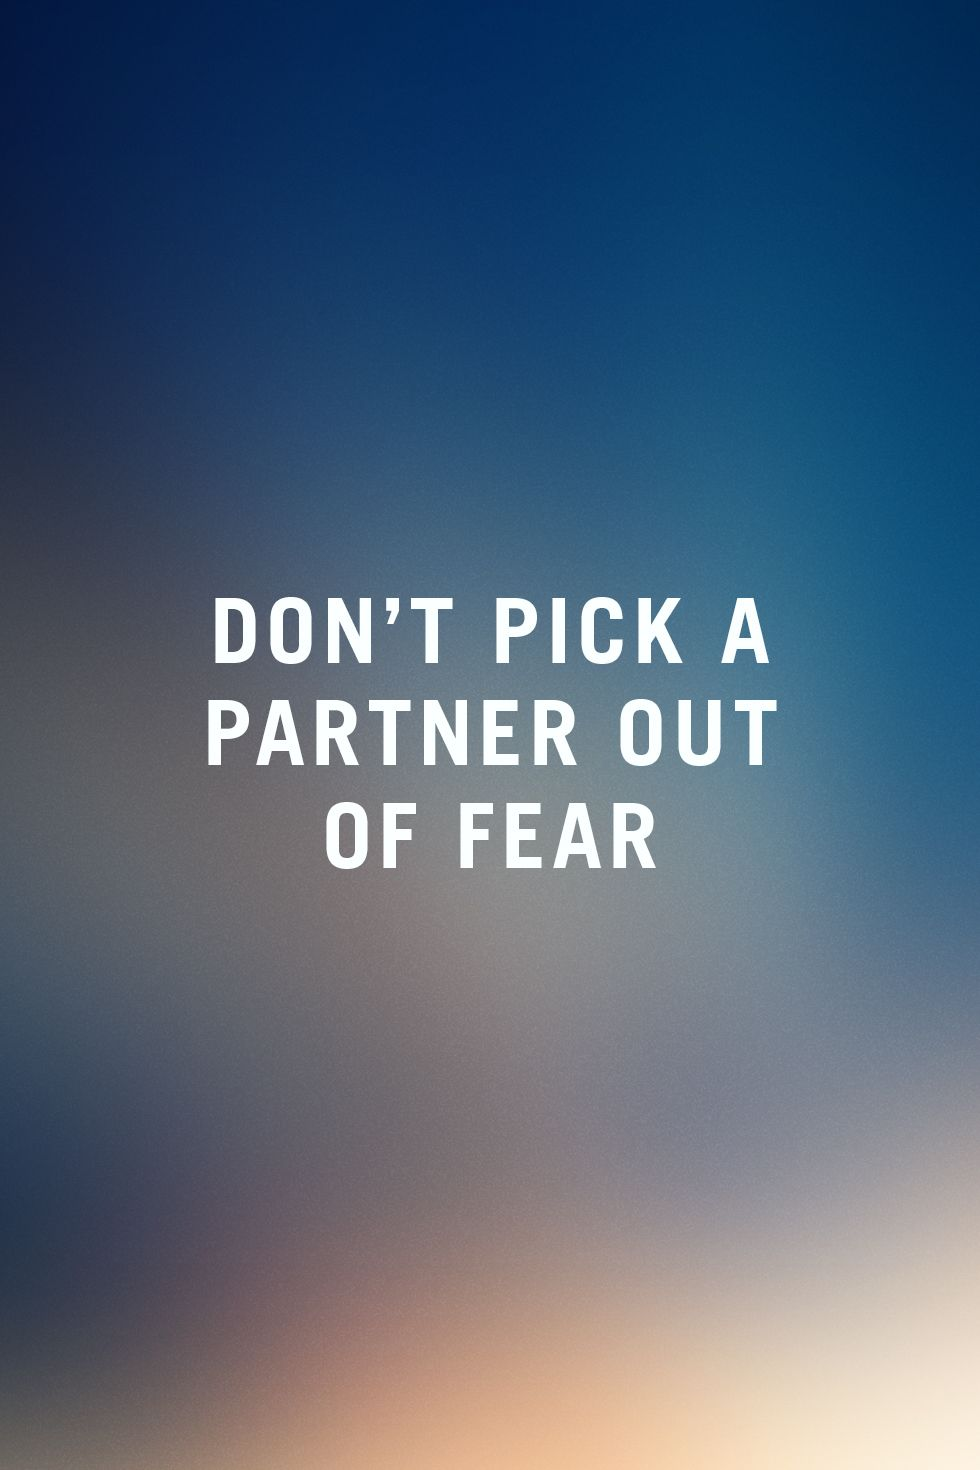 codependent behavior deals mostly with this basic fear